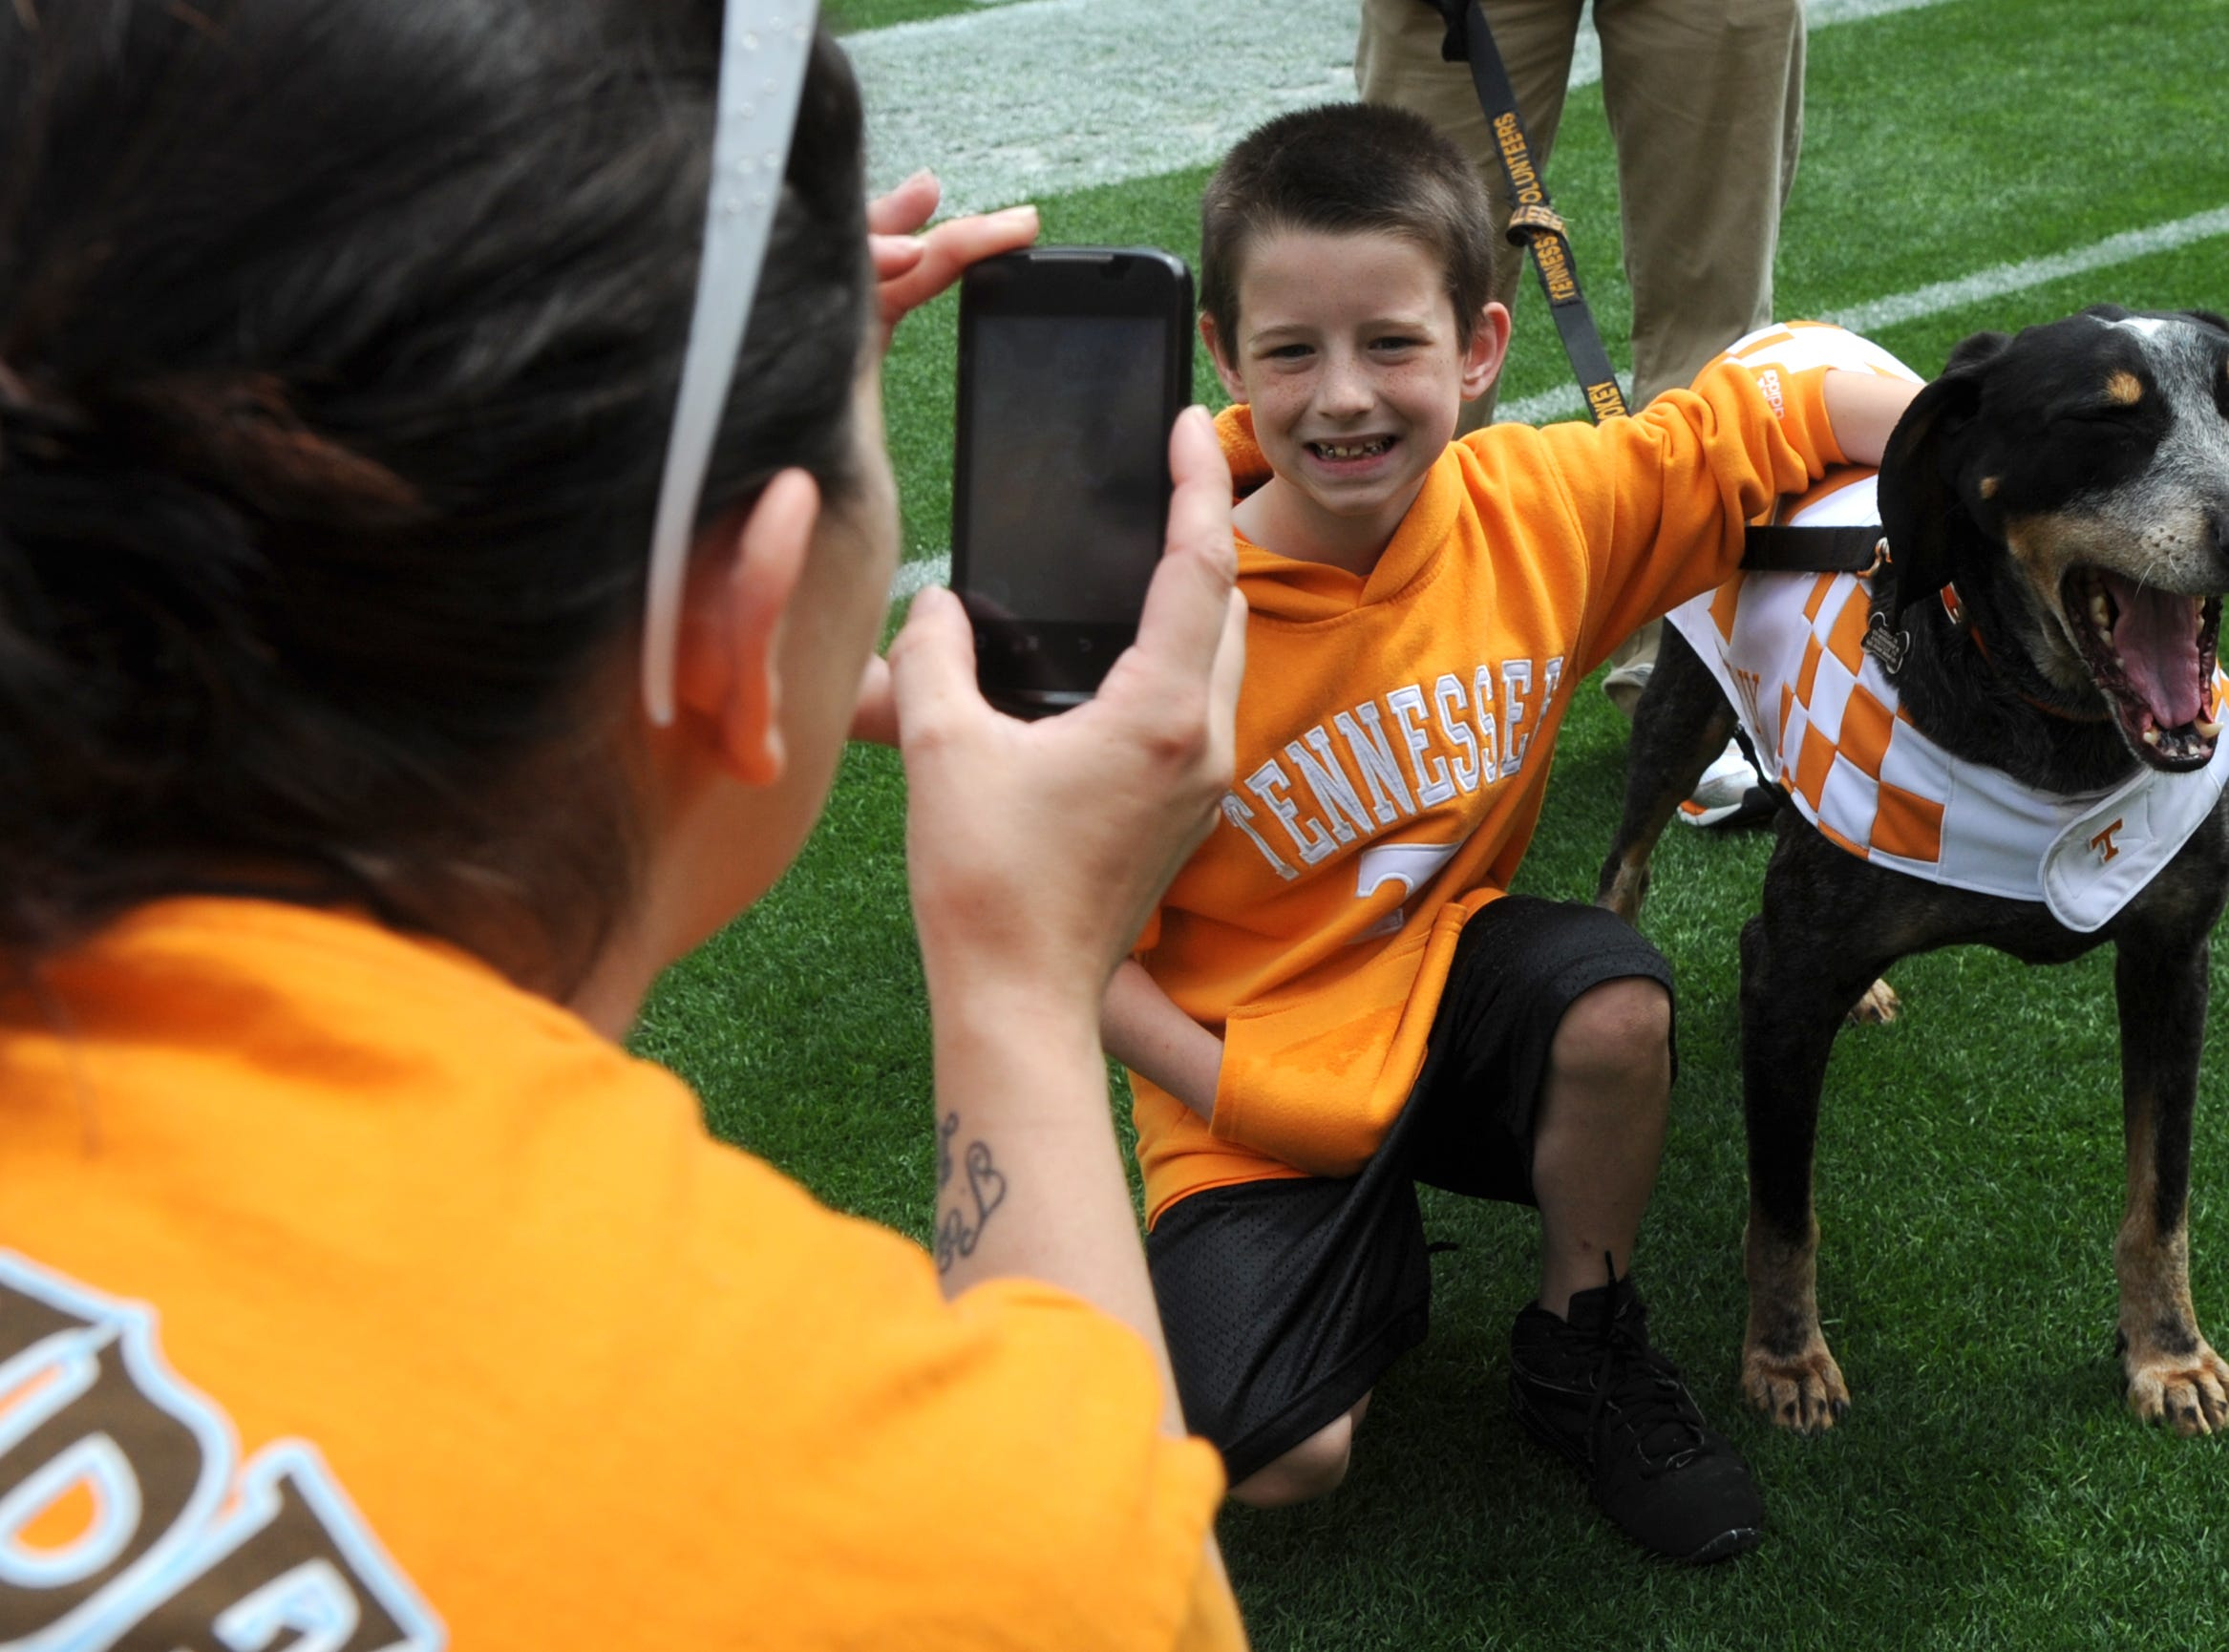 Trent Pyles, center, poses with Smokey as his mother, April, takes a photo during Fan Day prior to the Orange and White Game at Neyland Stadium Saturday, April 21, 2012.